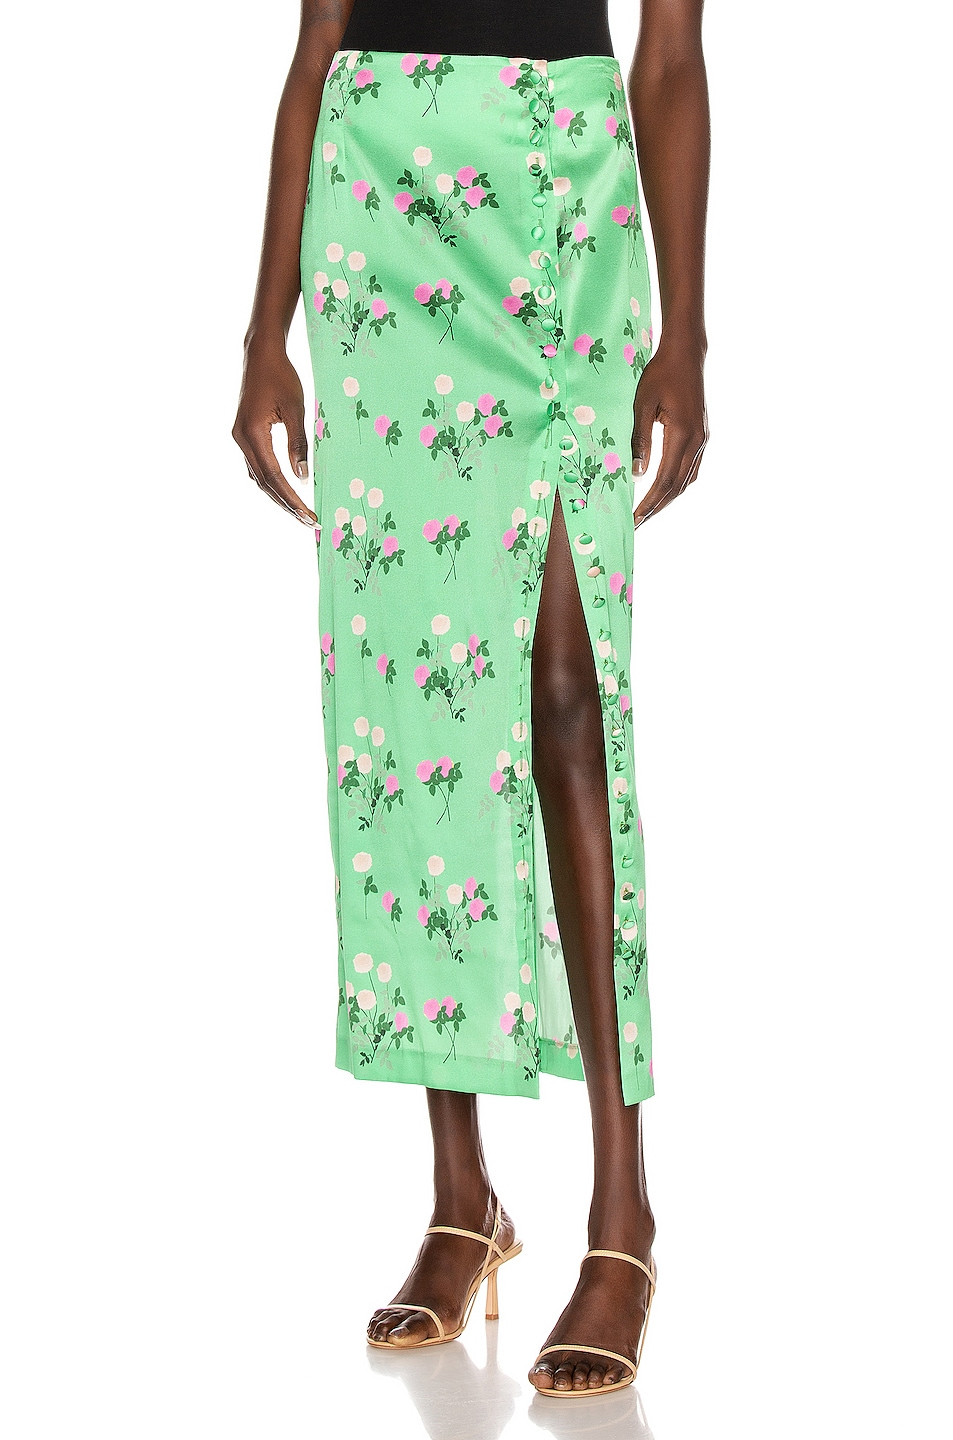 Image 1 of BERNADETTE Kelly Skirt in Floral Pink & Green